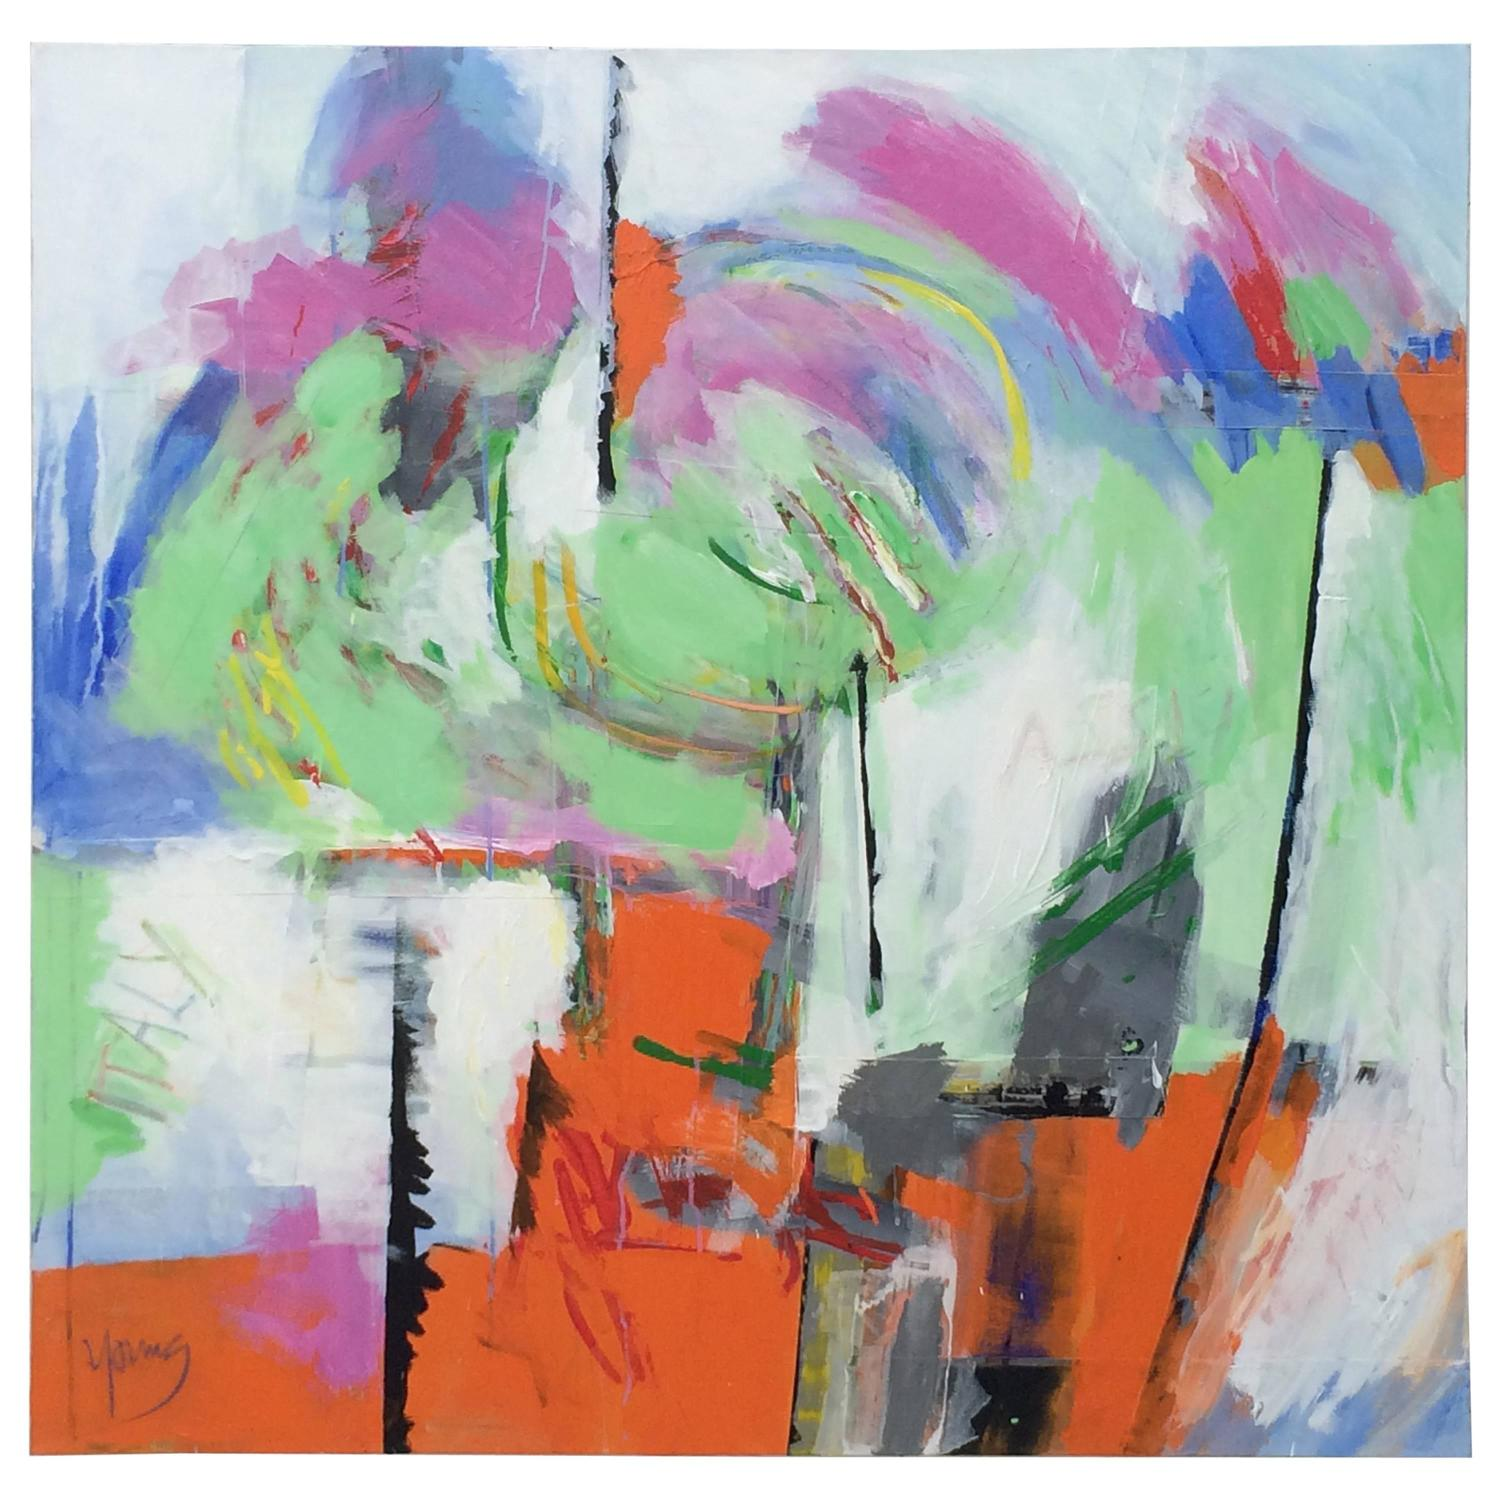 Original abstract painting untitled 2 by sean young for for Original abstract paintings for sale